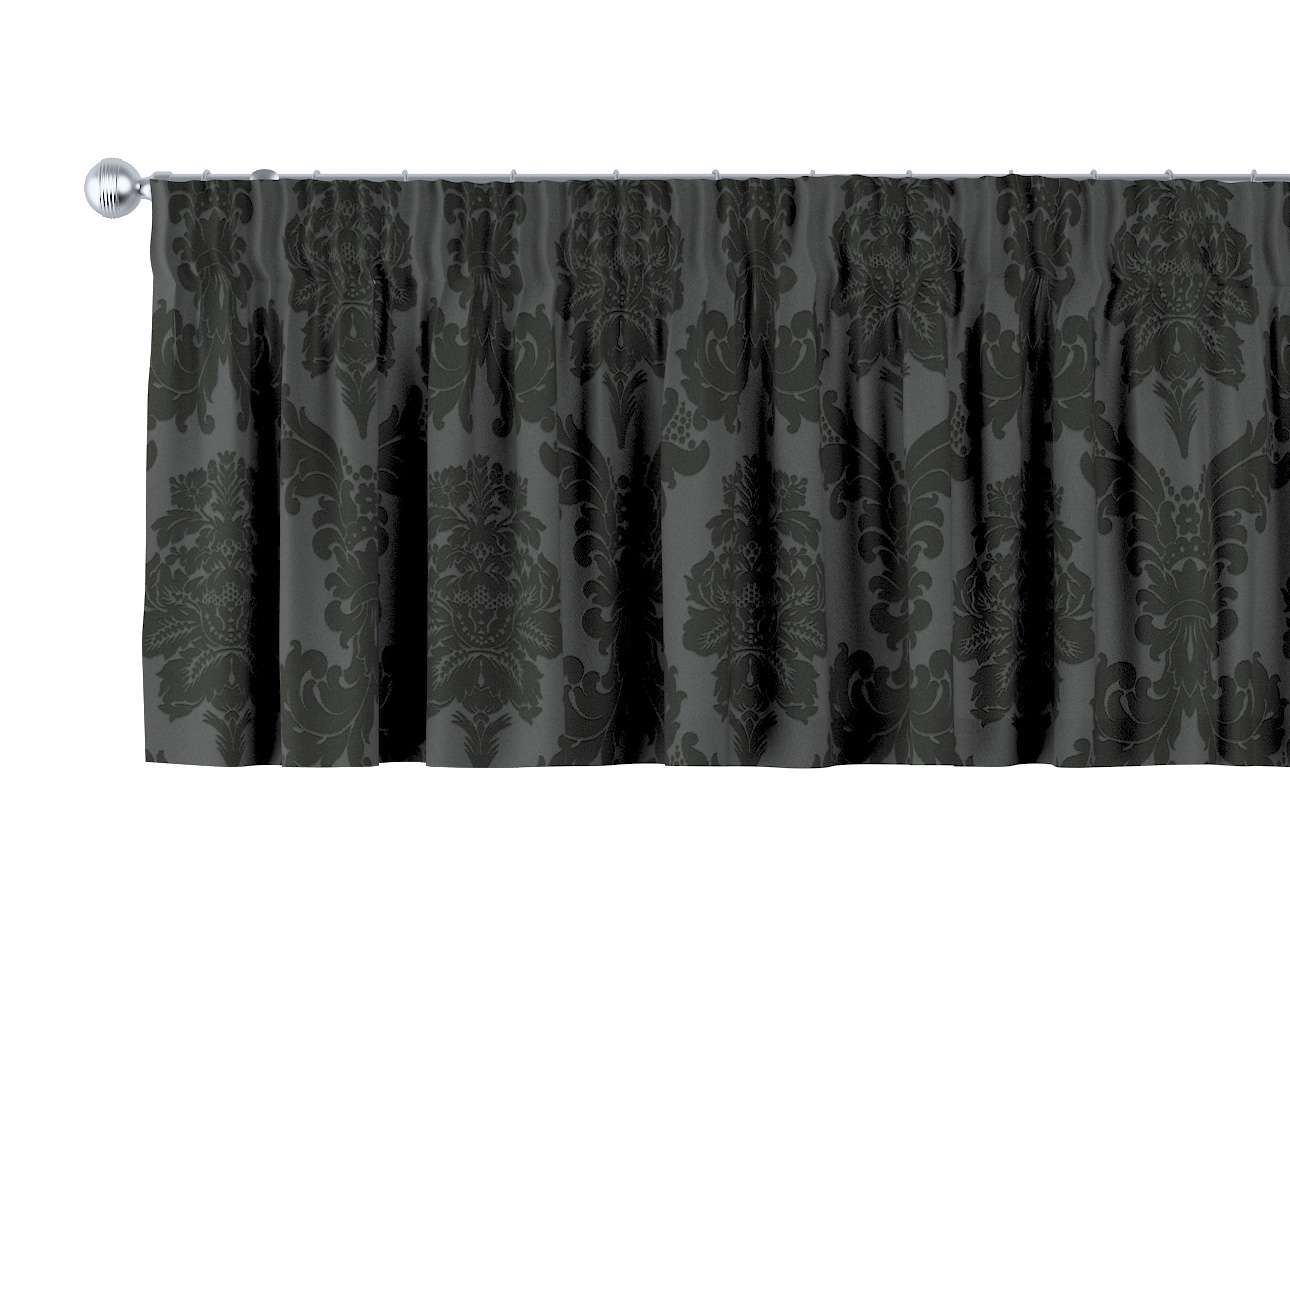 Pencil pleat pelmet in collection Damasco, fabric: 613-32